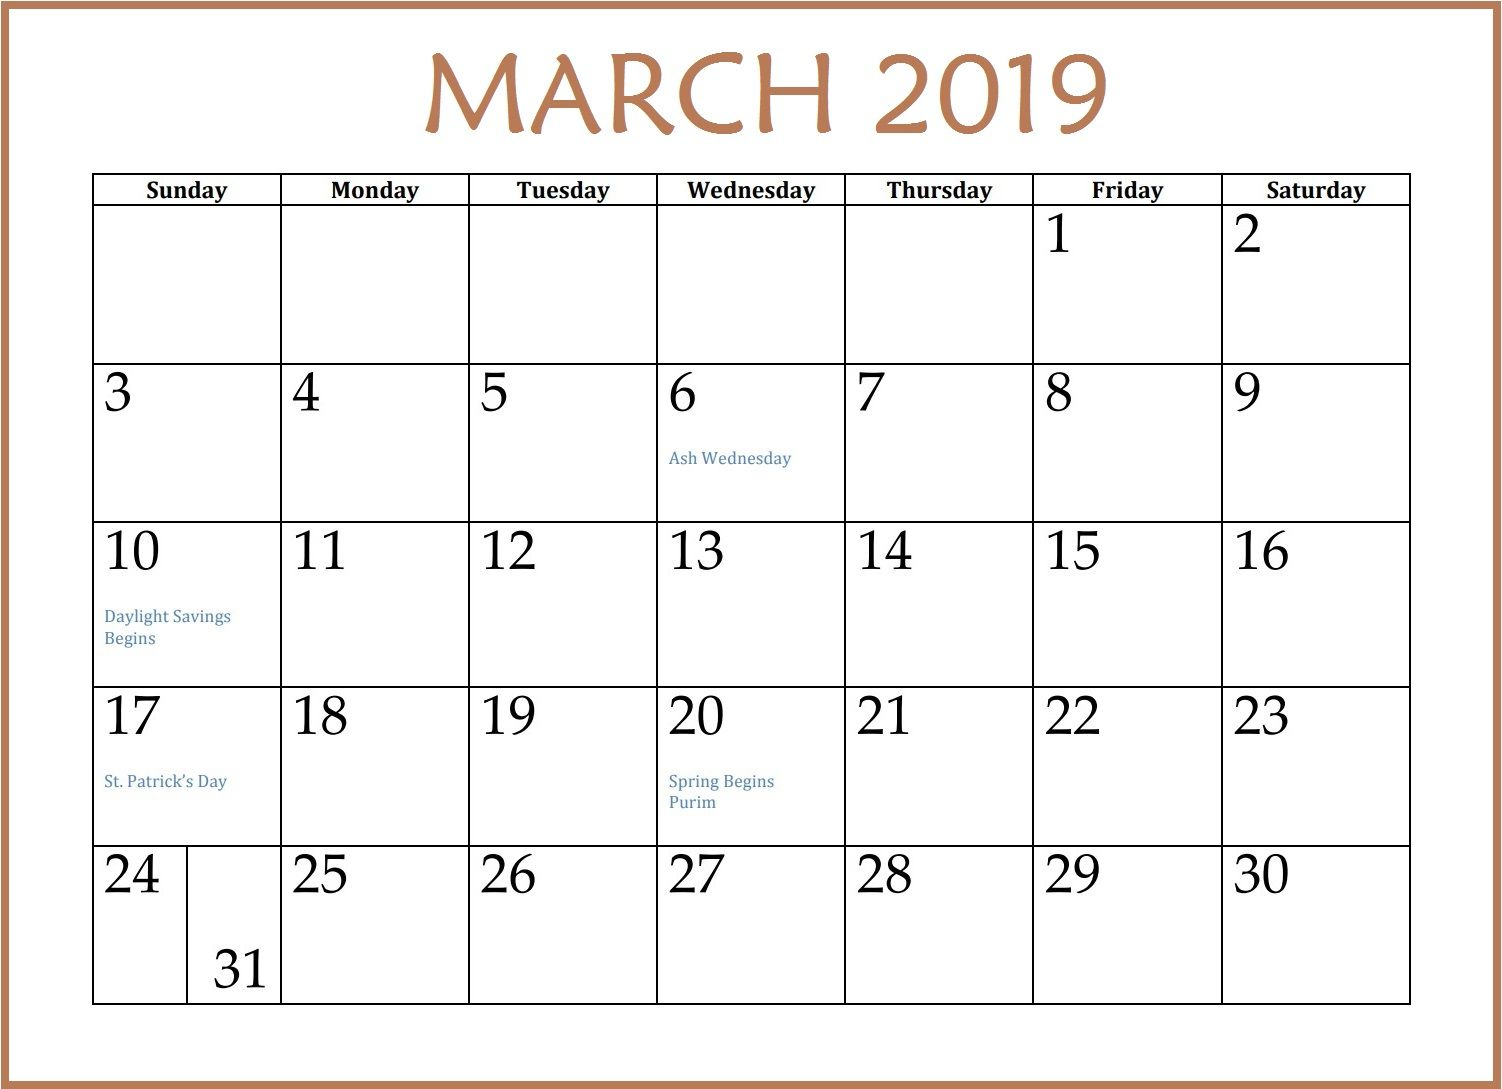 March 2019 Calendar Printable #Marchcalendar # Throughout Calendar With March Filled In